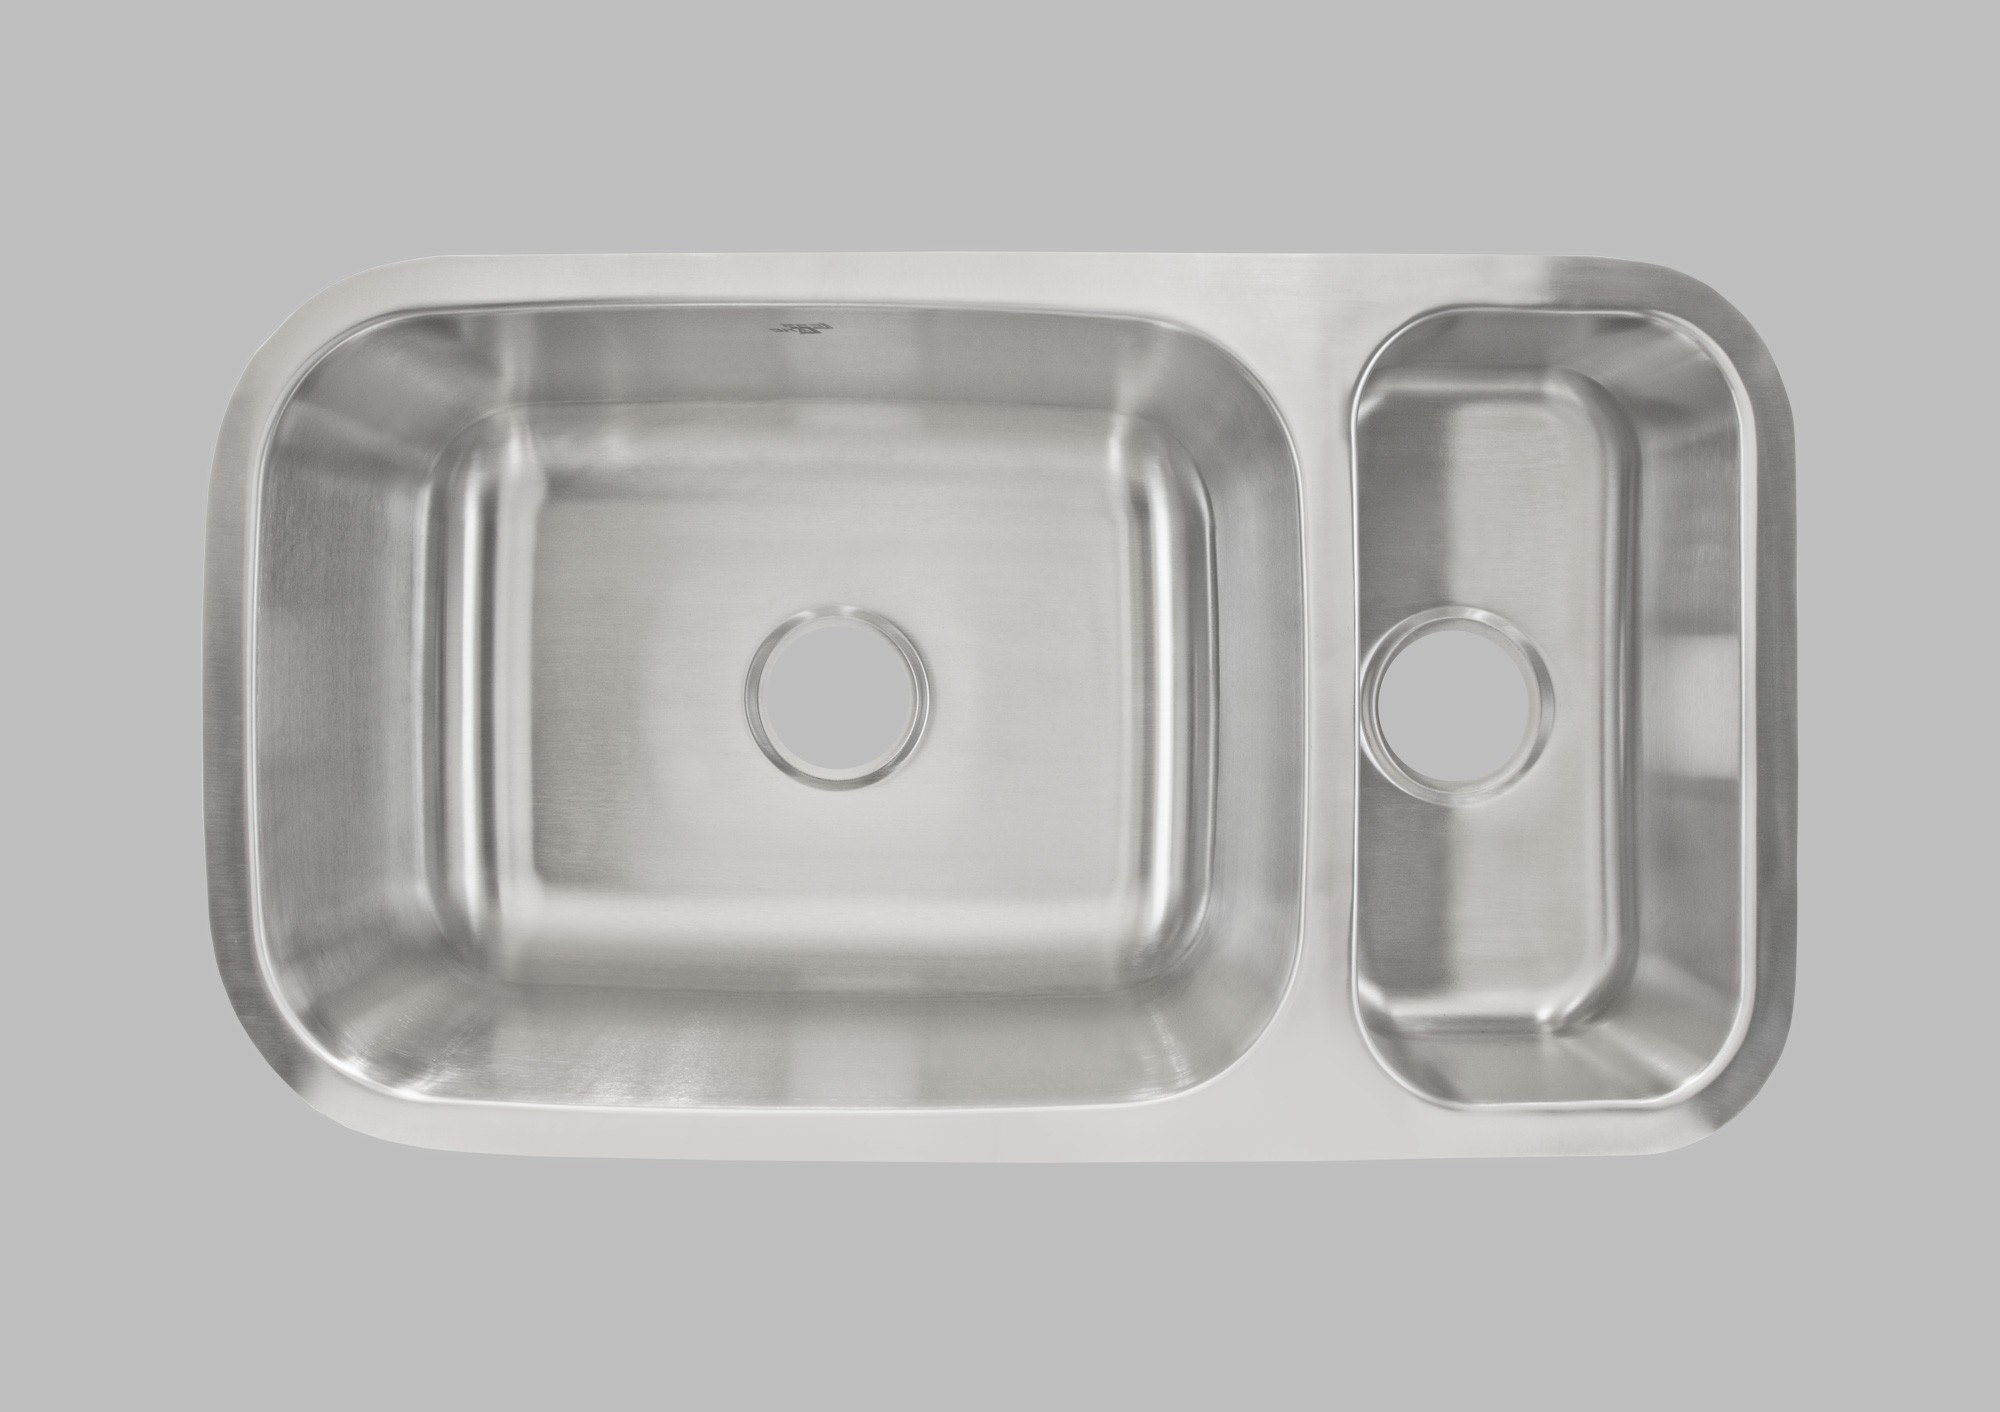 Less Care L204r 32 Inch Undermount Double Bowl Kitchen Sink